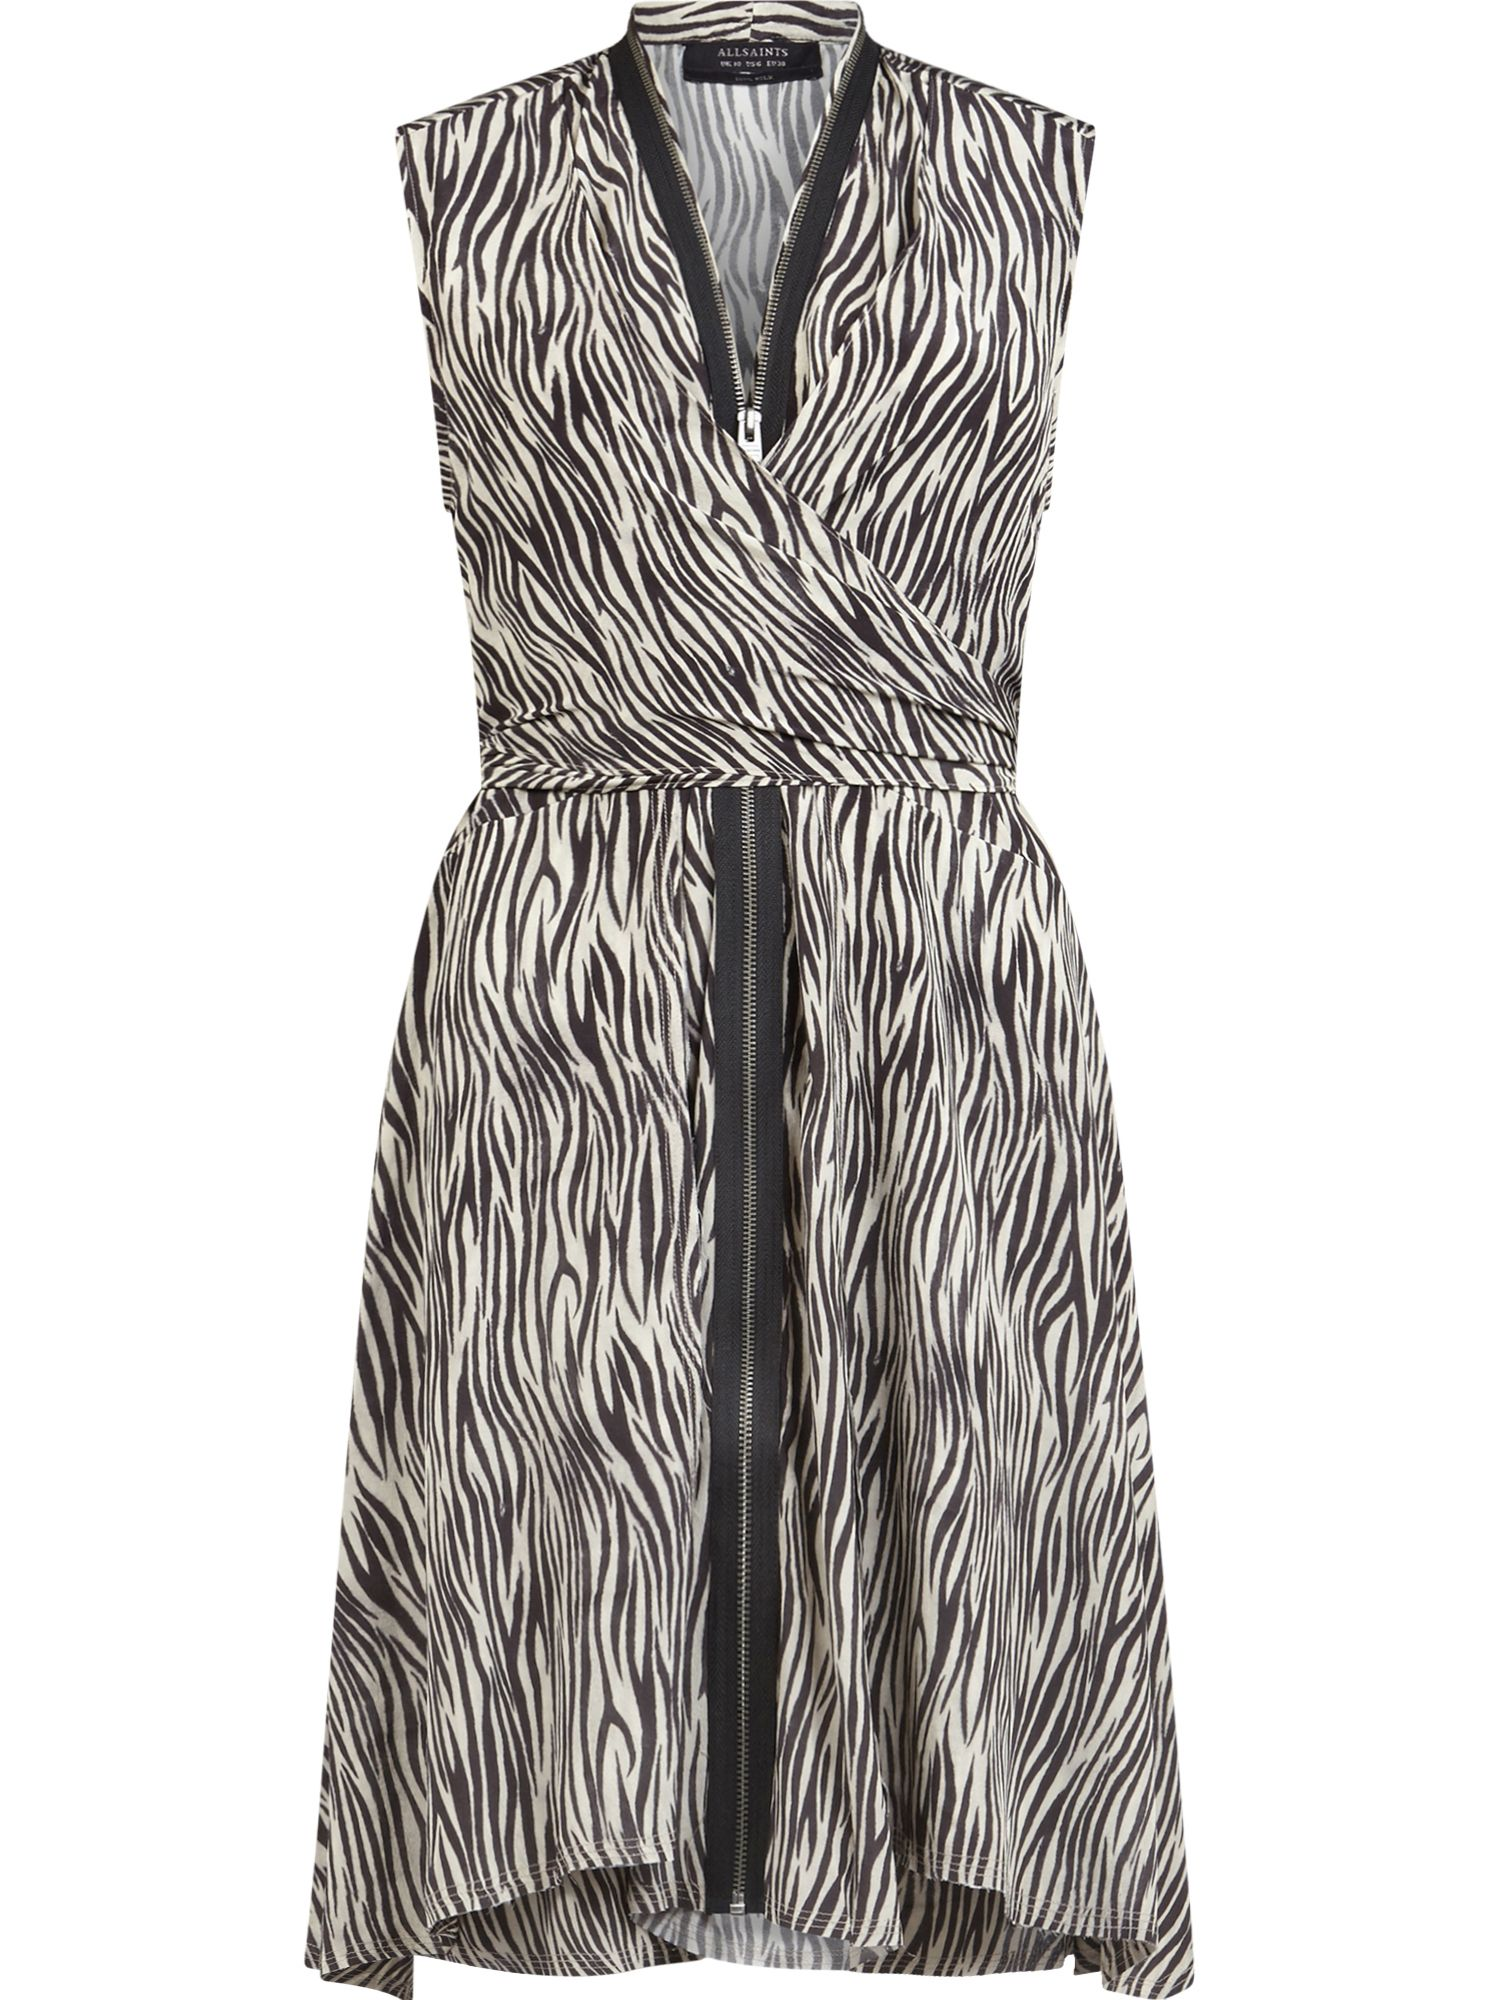 Black and white dresses house of fraser